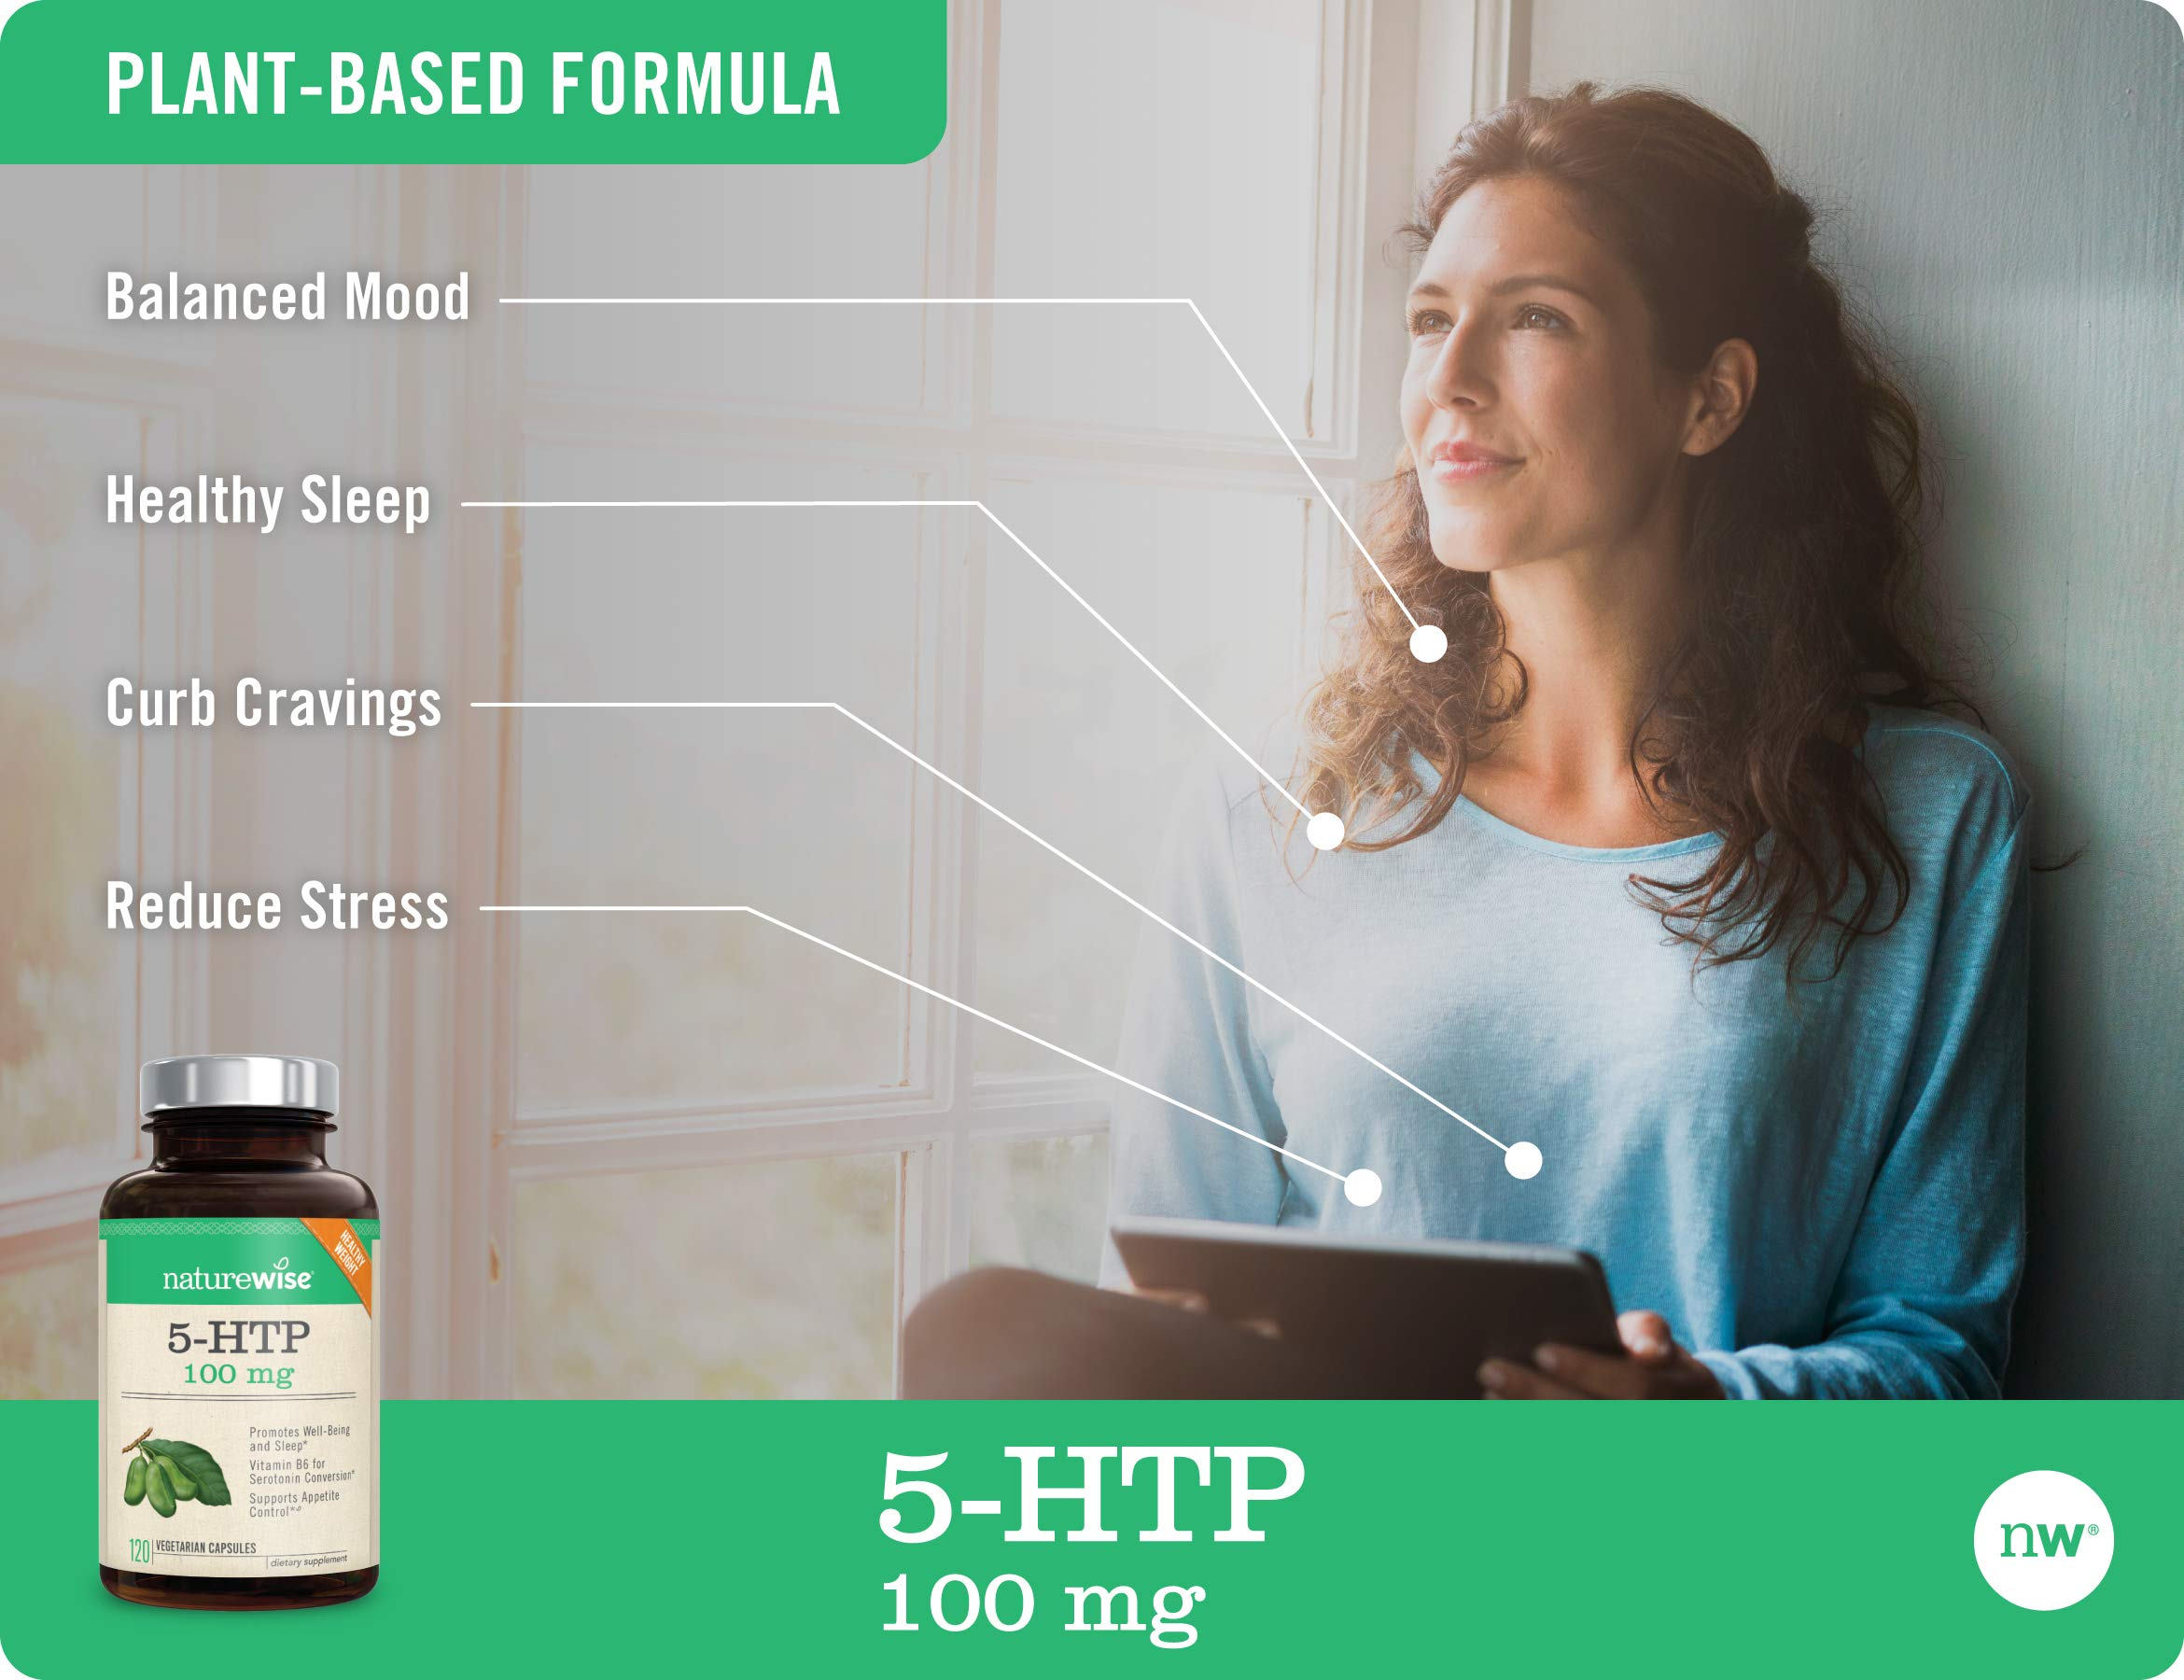 NatureWise 5-HTP 100mg   Natural Mood & Sleep Support   Curbs Appetite to Support Weight Loss   Enhanced with Vitamin B6   Non-GMO, Gluten Free, Vegetarian (Packaging May Vary) [2 Month - 120 Count]